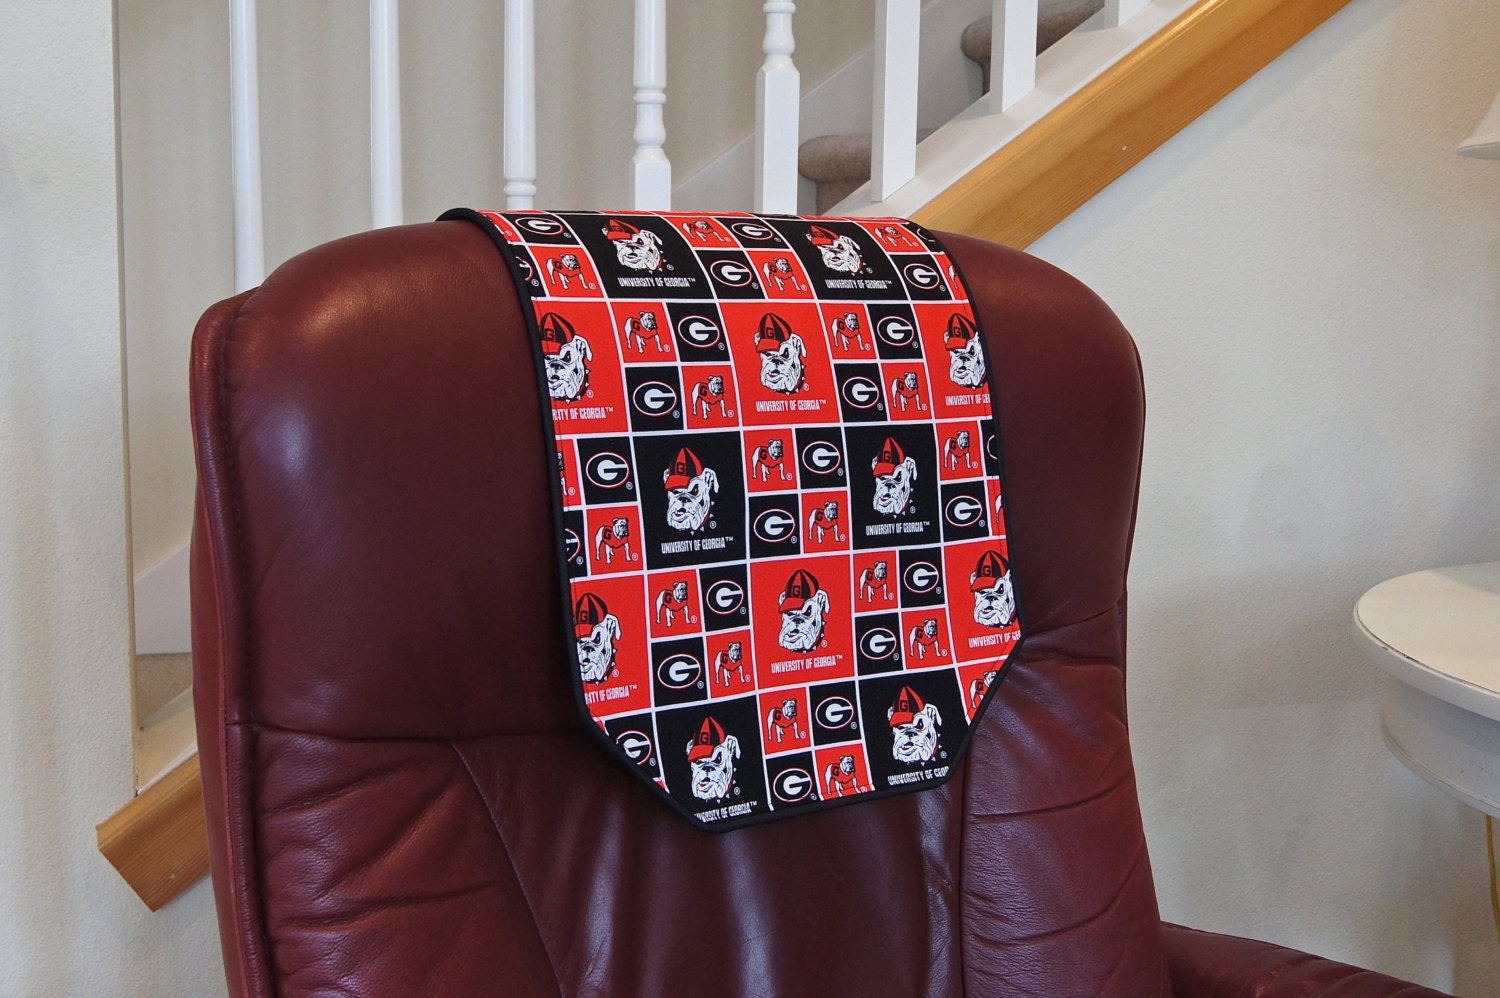 recliner chair headrest cover made with uga by chairflair